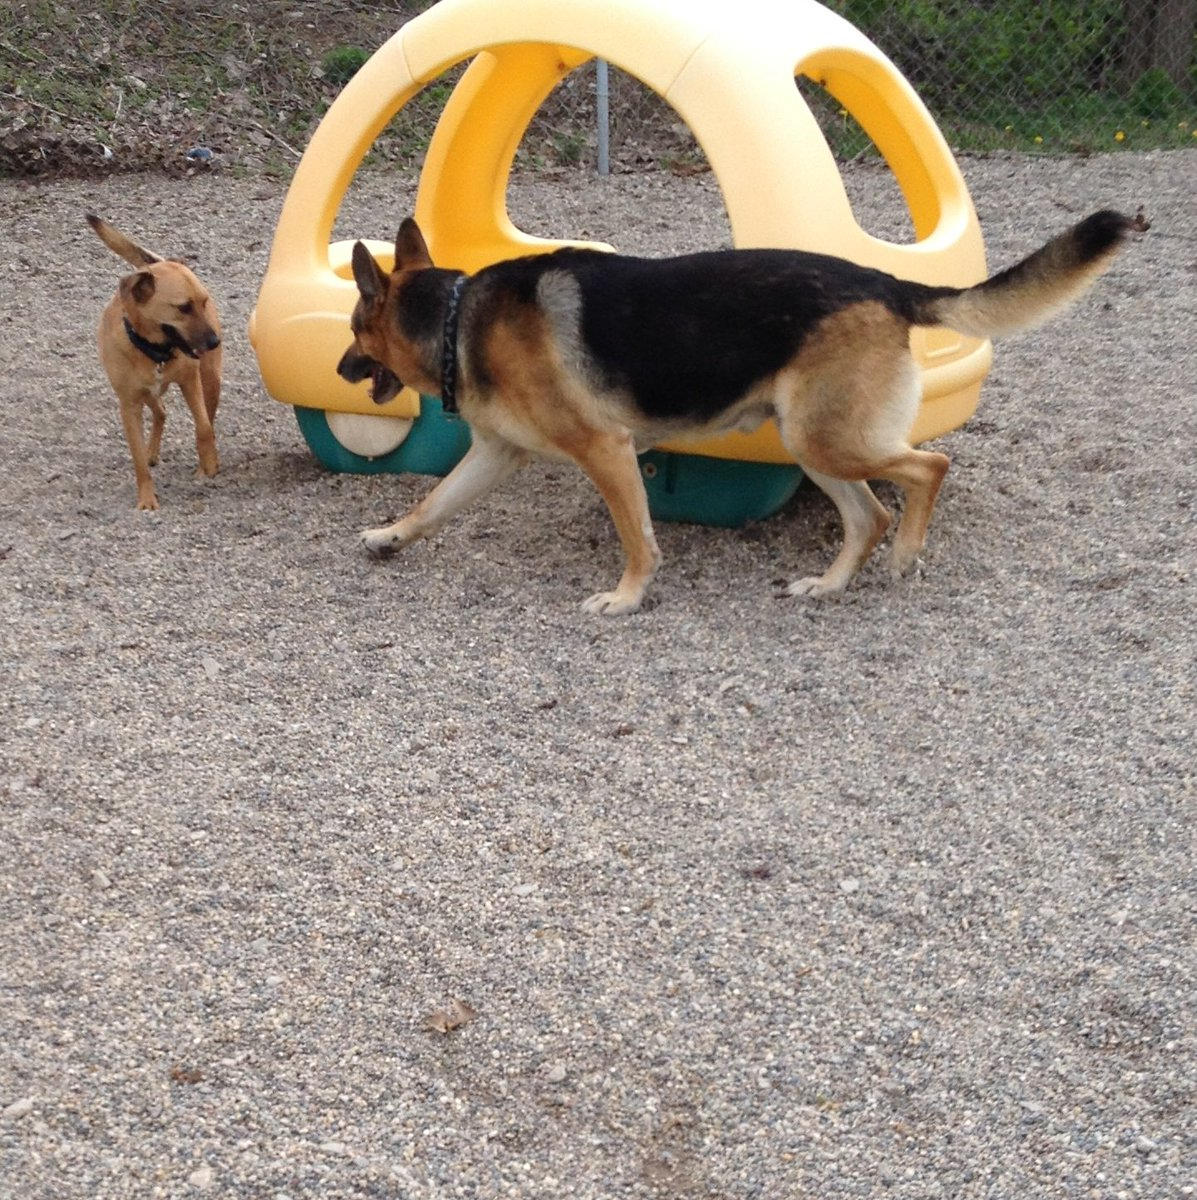 Chip tries to sneak up on Dega!